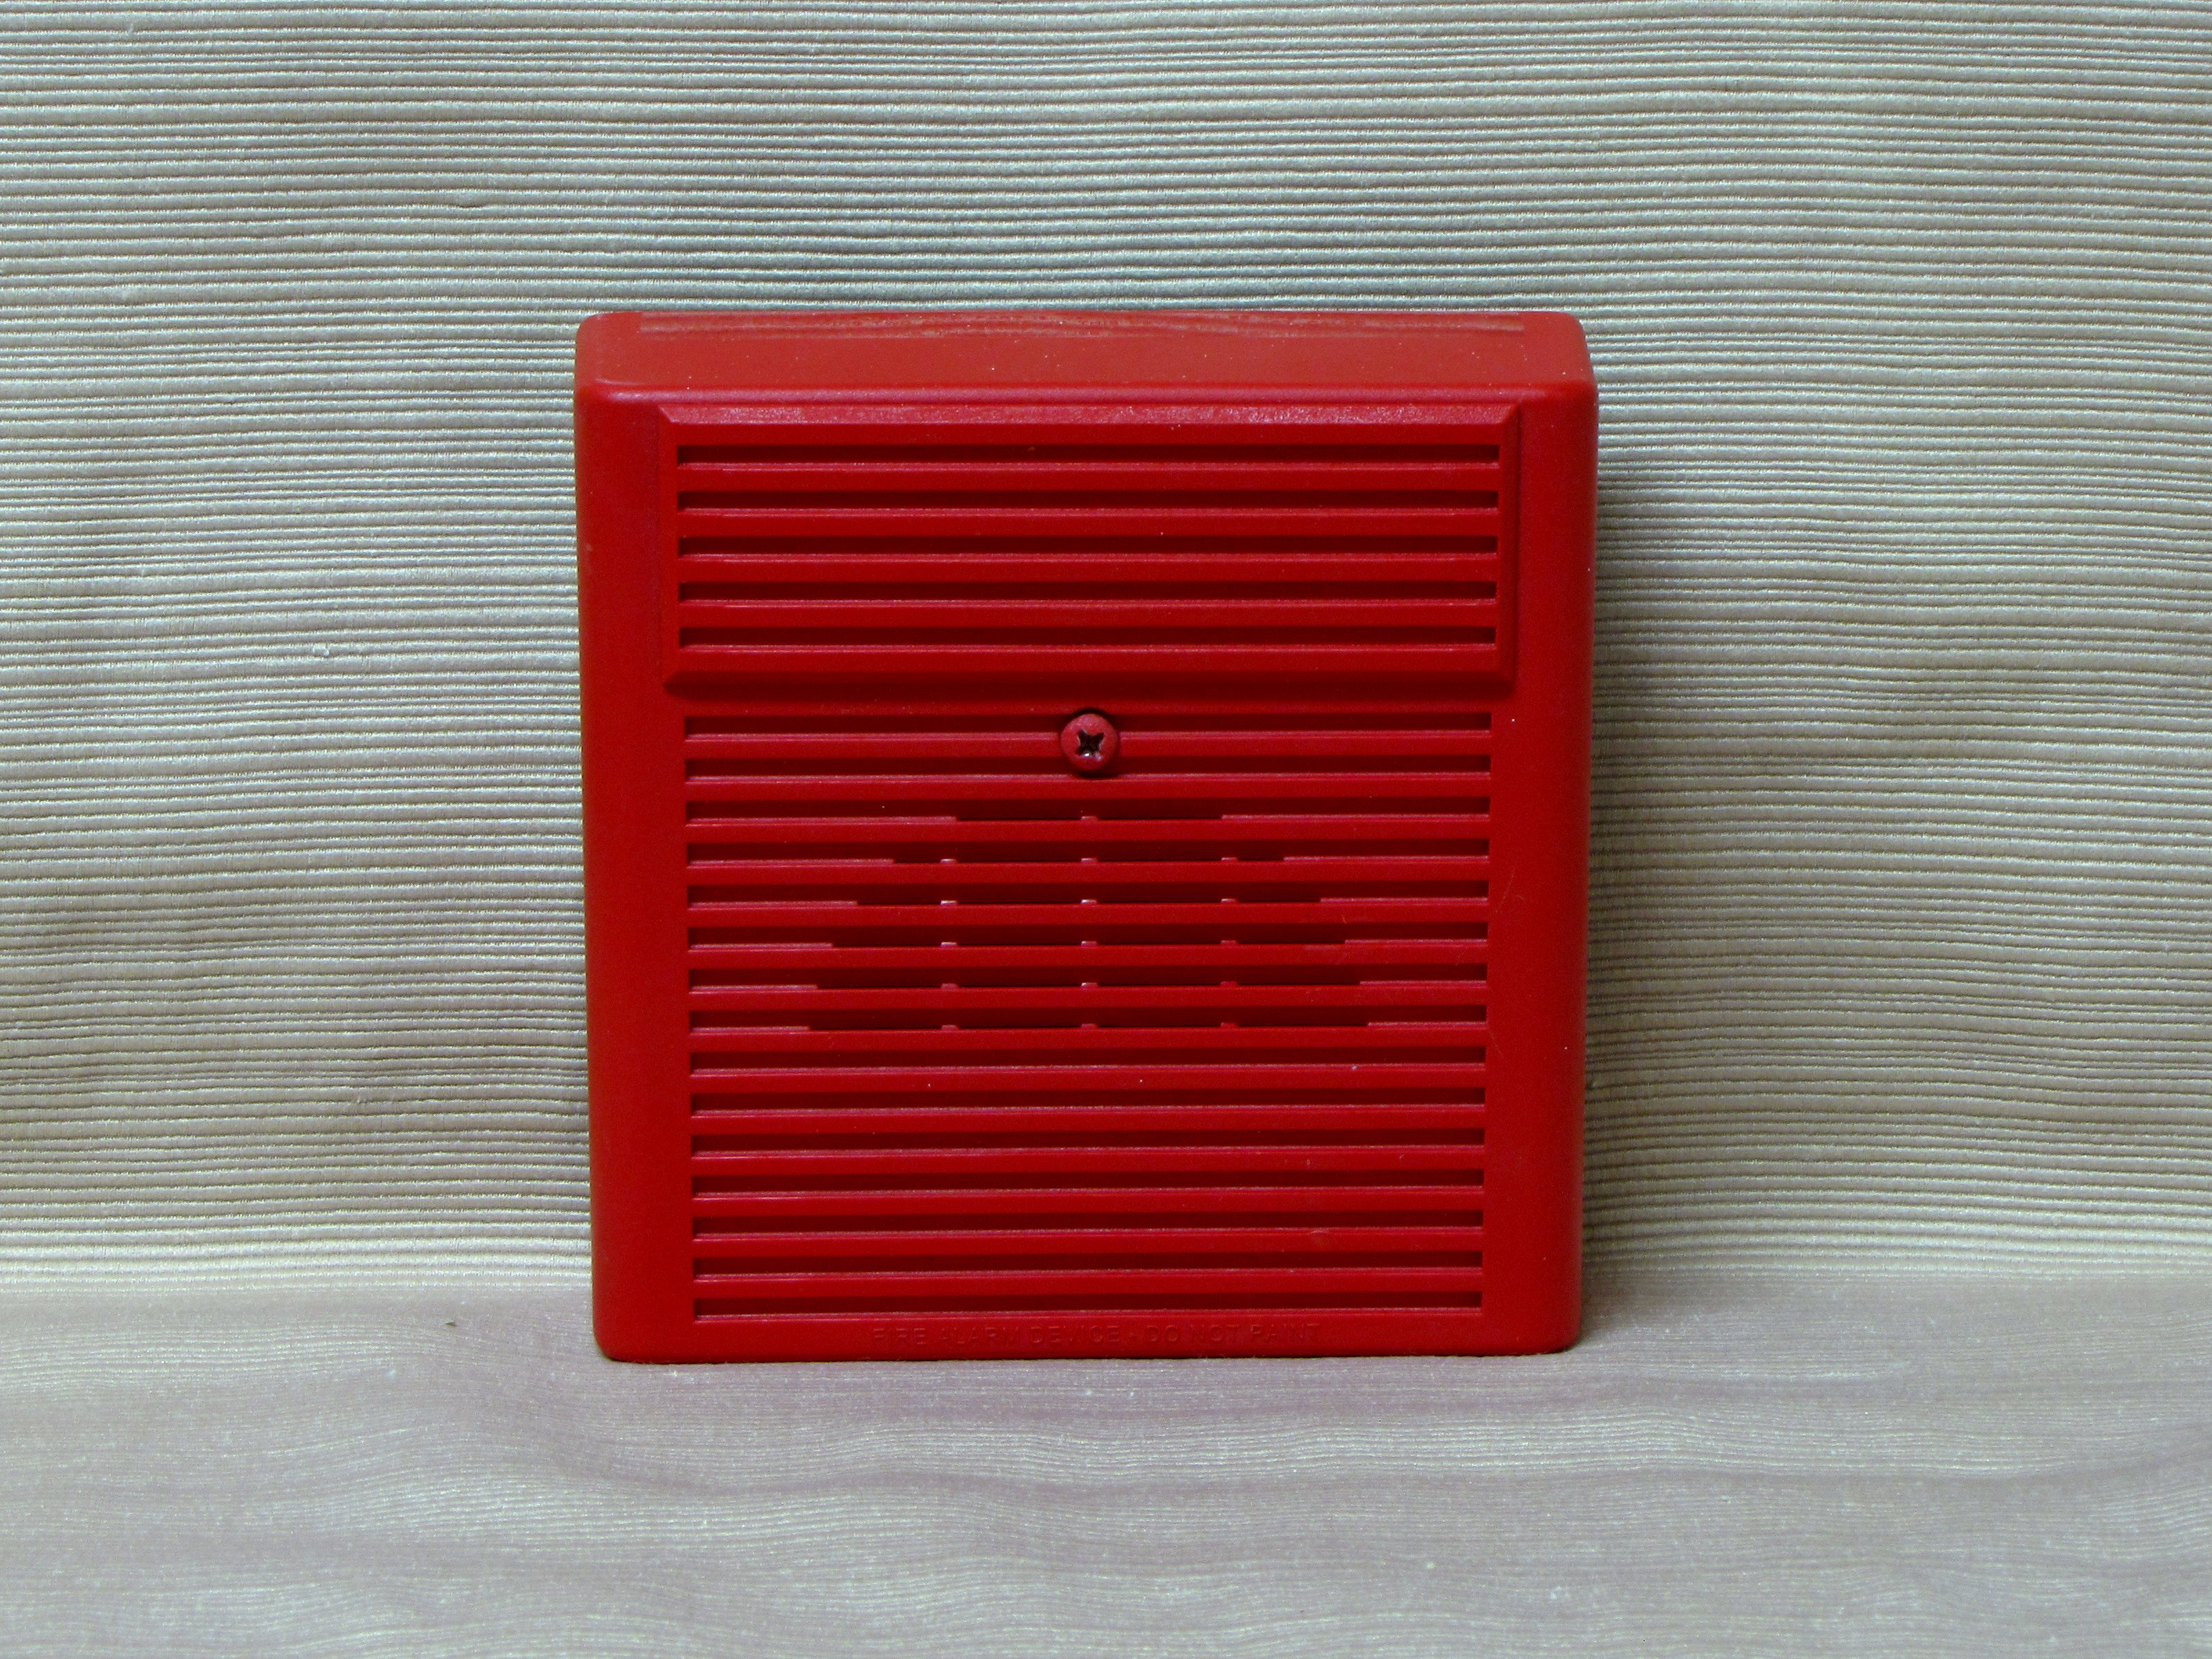 The Schumin Web » New fire alarms at work…  |Wheelock Fire Alarm Horn Strobe